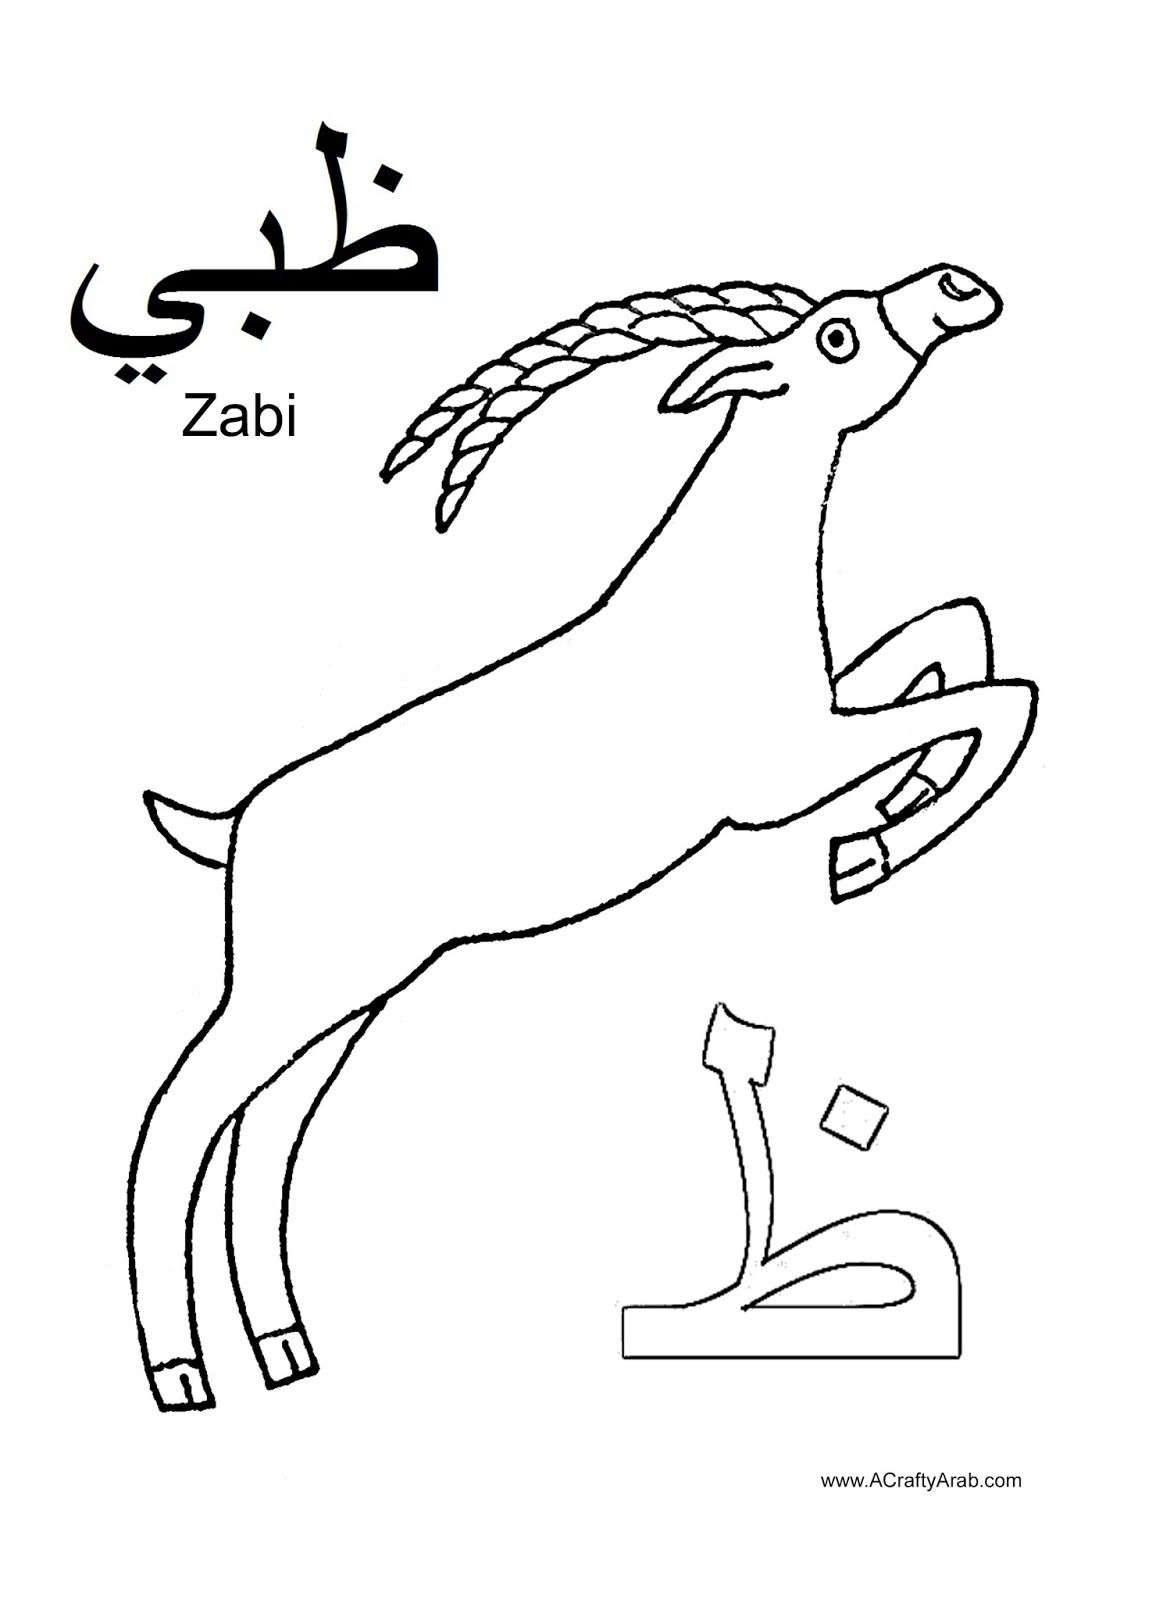 A Crafty Arab Multicultural Toys Activities For Kids Arabic Alphabet Coloring Pages Za Is For Z Arabic Alphabet Alphabet Coloring Pages Alphabet Coloring